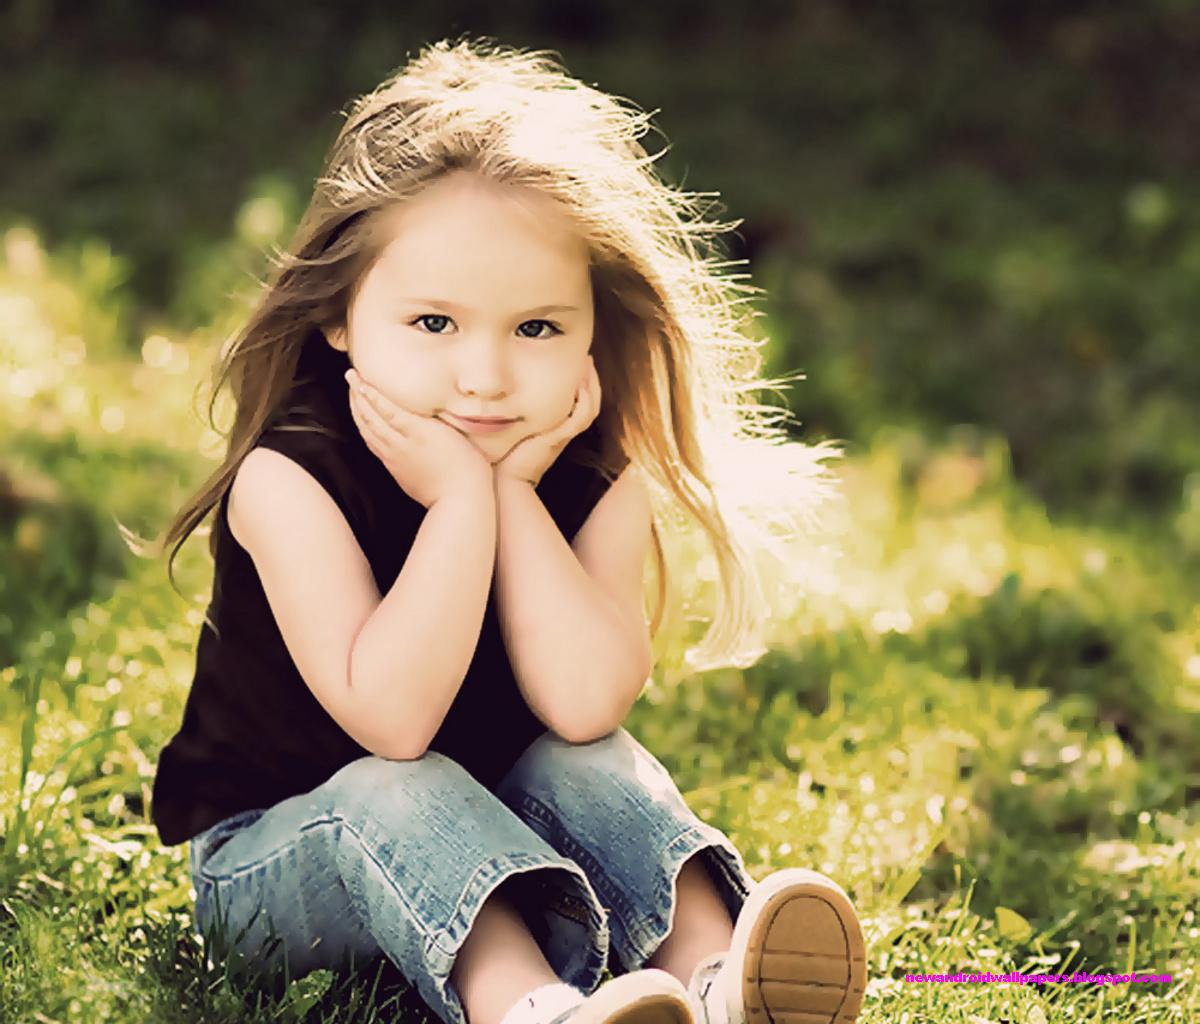 Image of: Pics Cute And Nice Baby Sitting On Green Grass High Quality Wallpapers For Free Beautiful Hd Wallpapers For Android Cute And Nice Baby Wallpapers In High Quality Free Download For